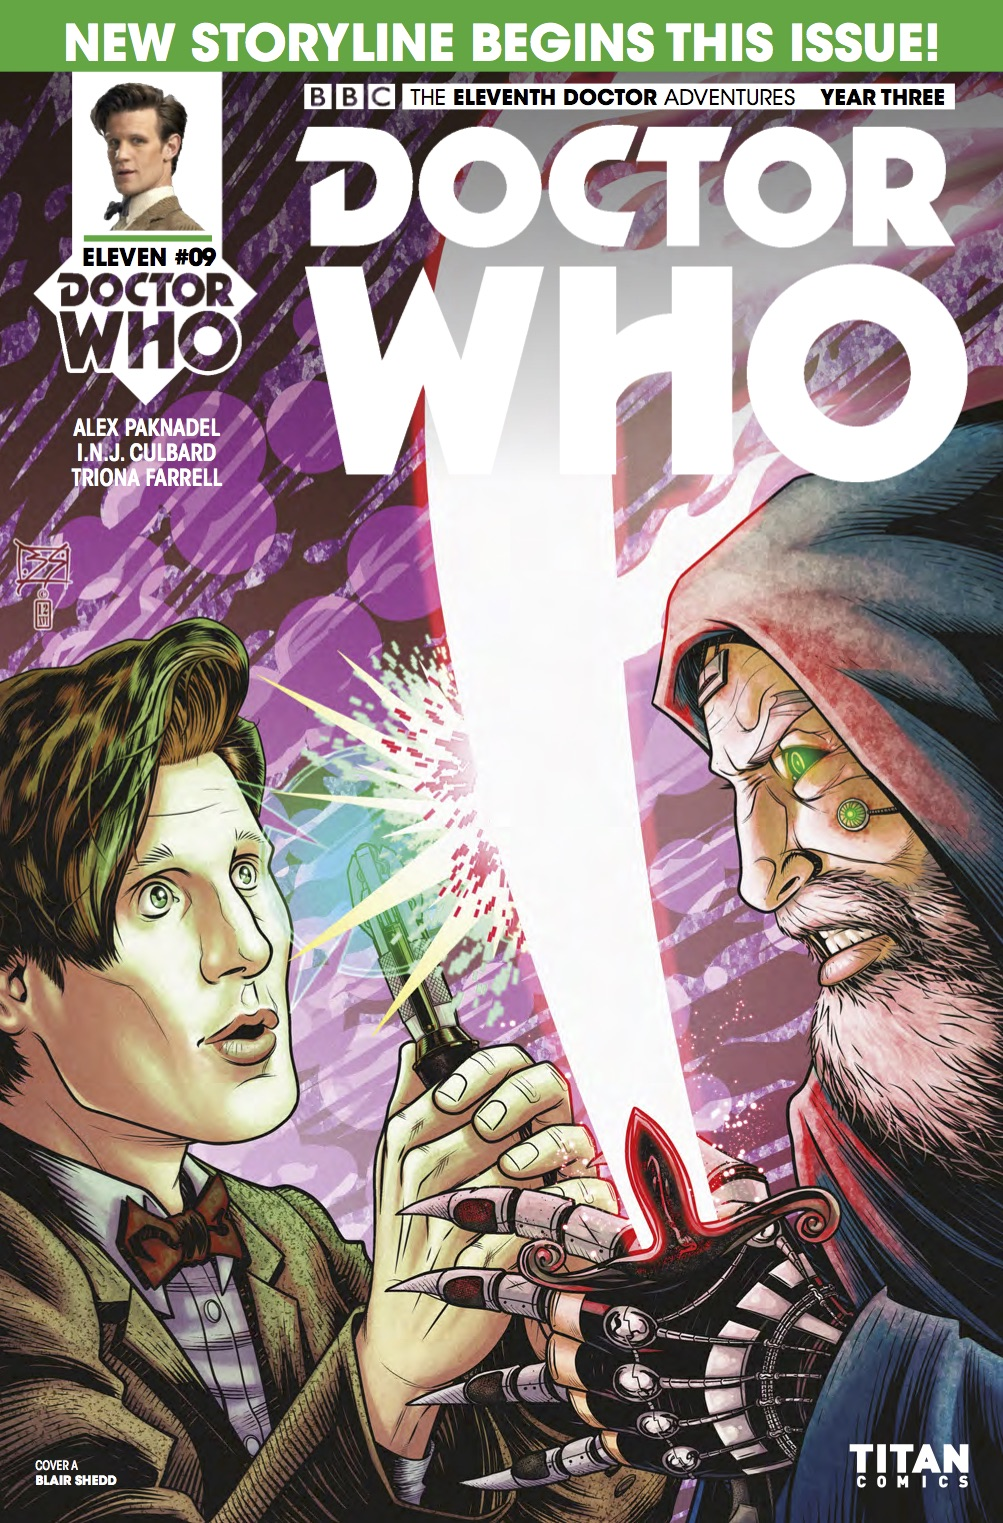 TITAN COMICS - DOCTOR WHO 11TH YEAR THREE #9